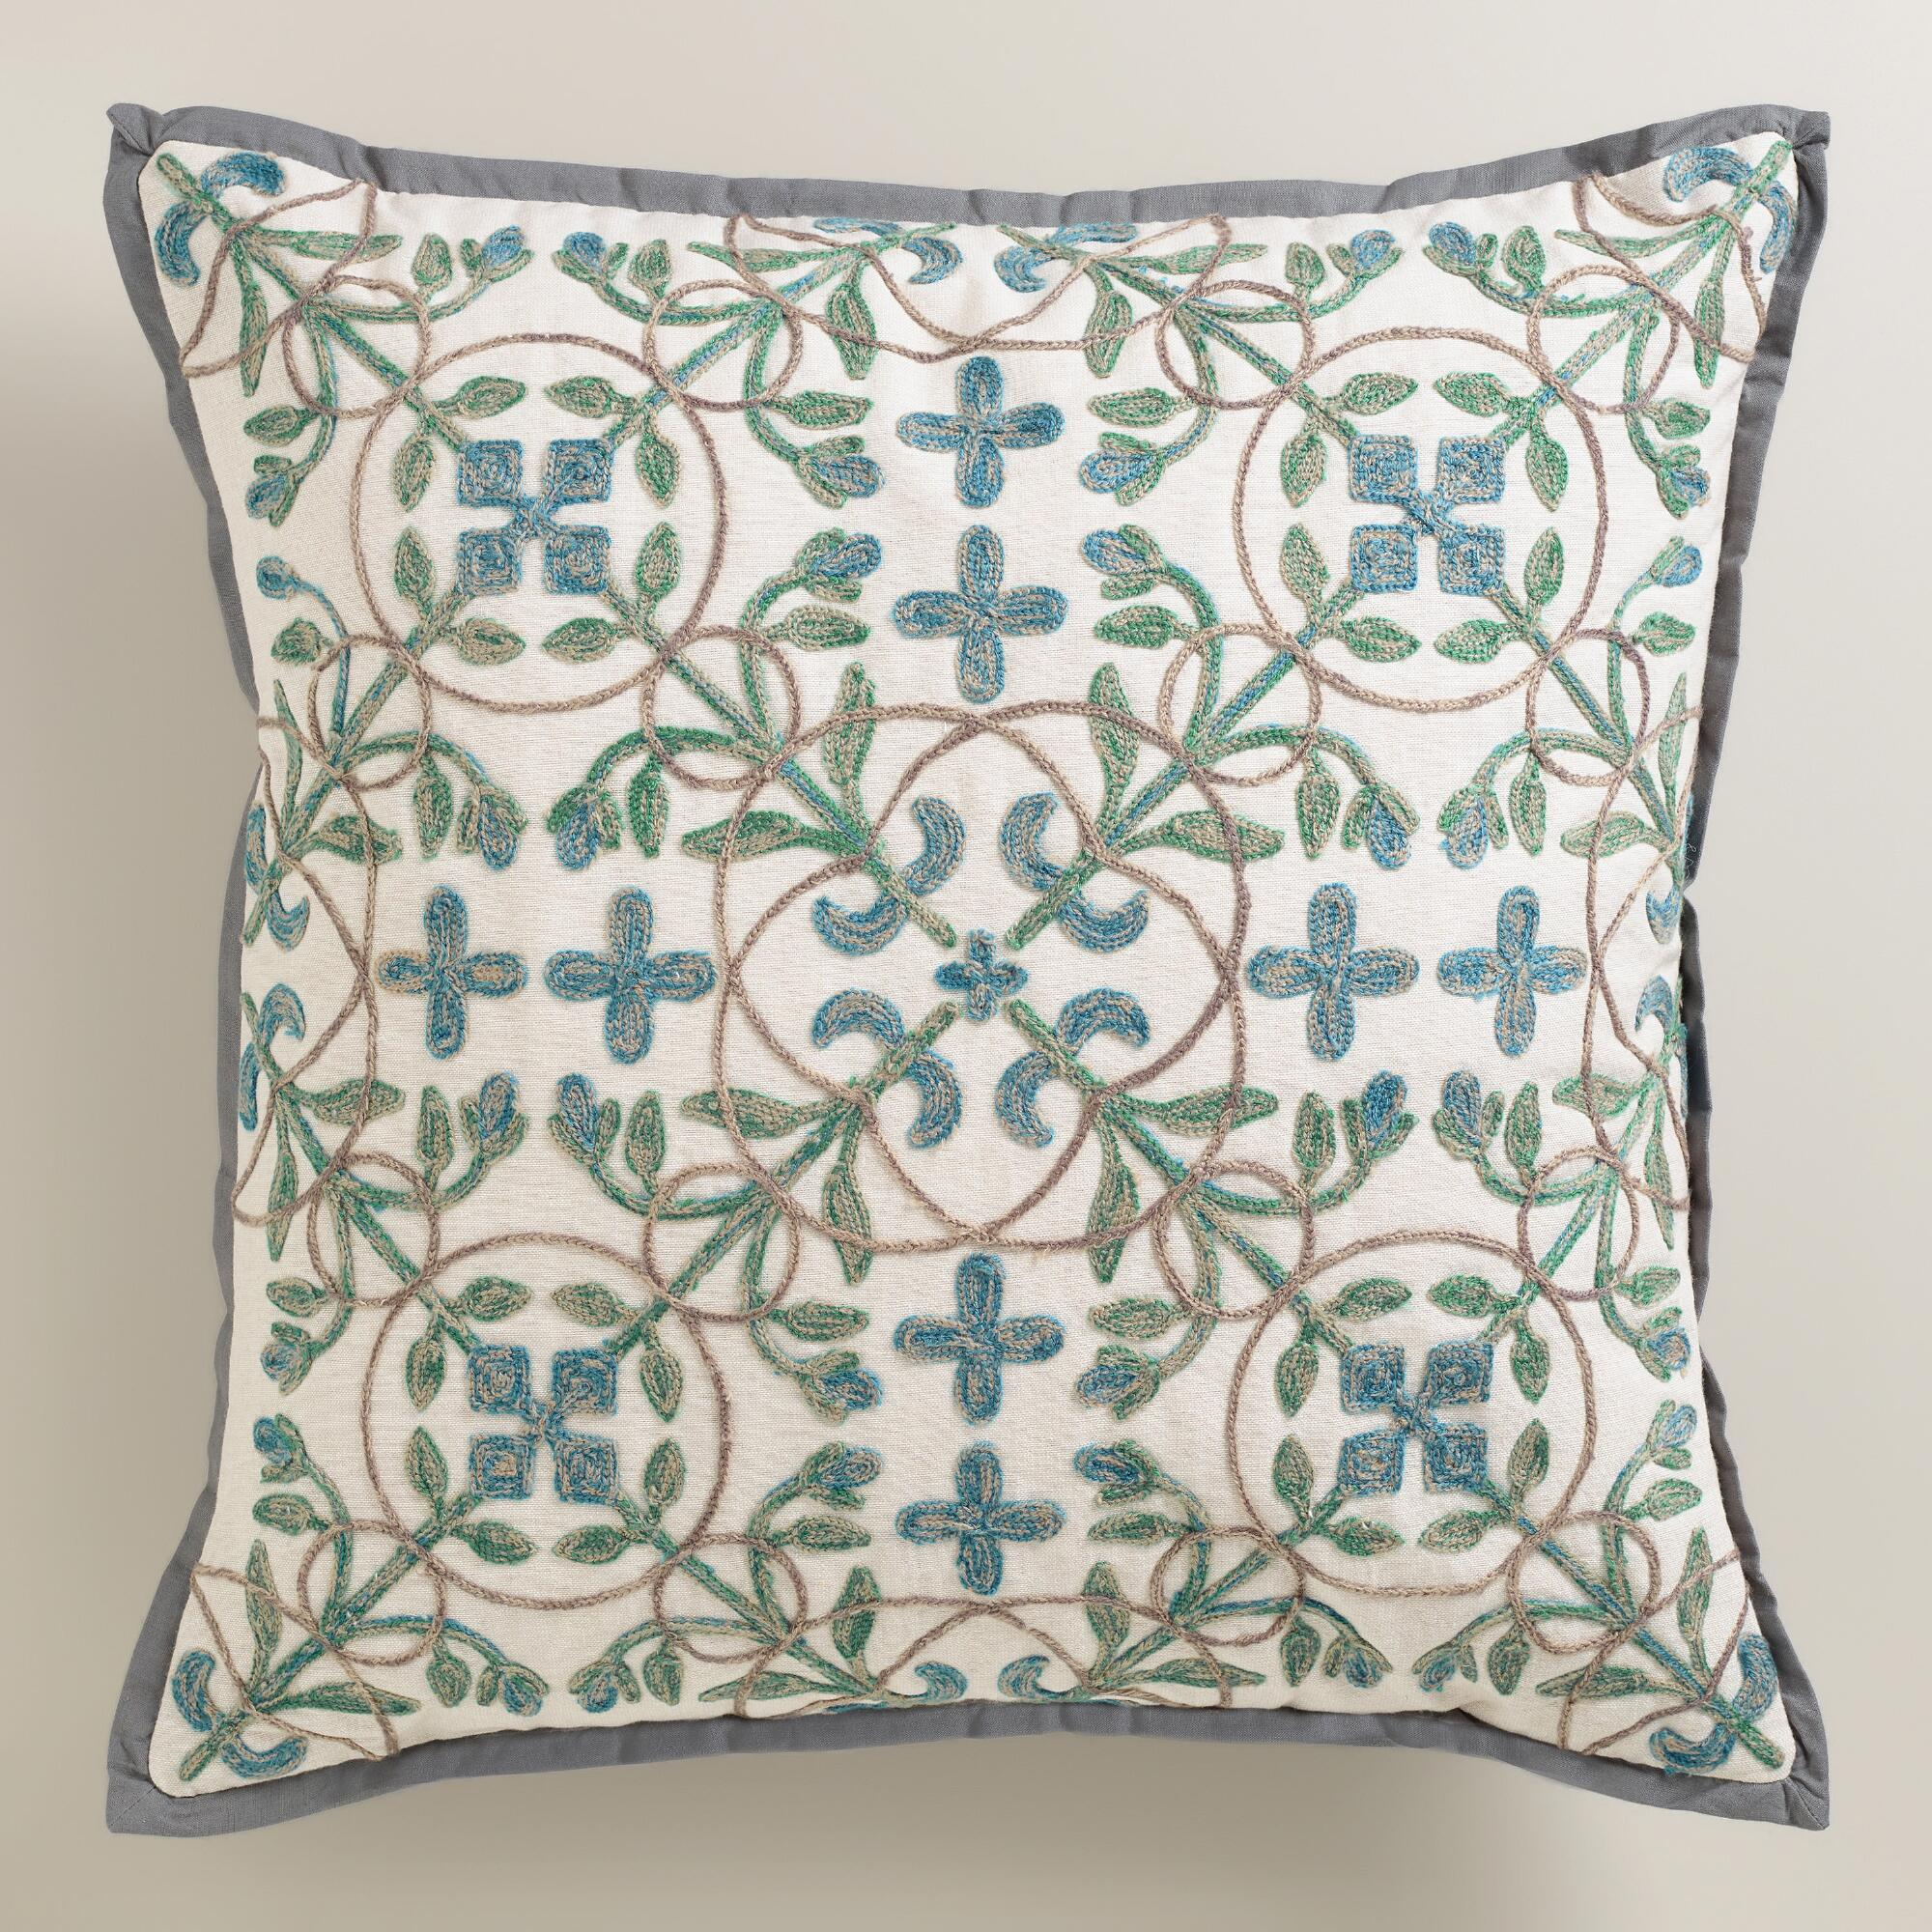 Blue And Aqua Throw Pillows : Aqua Blue Tile Throw Pillow World Market